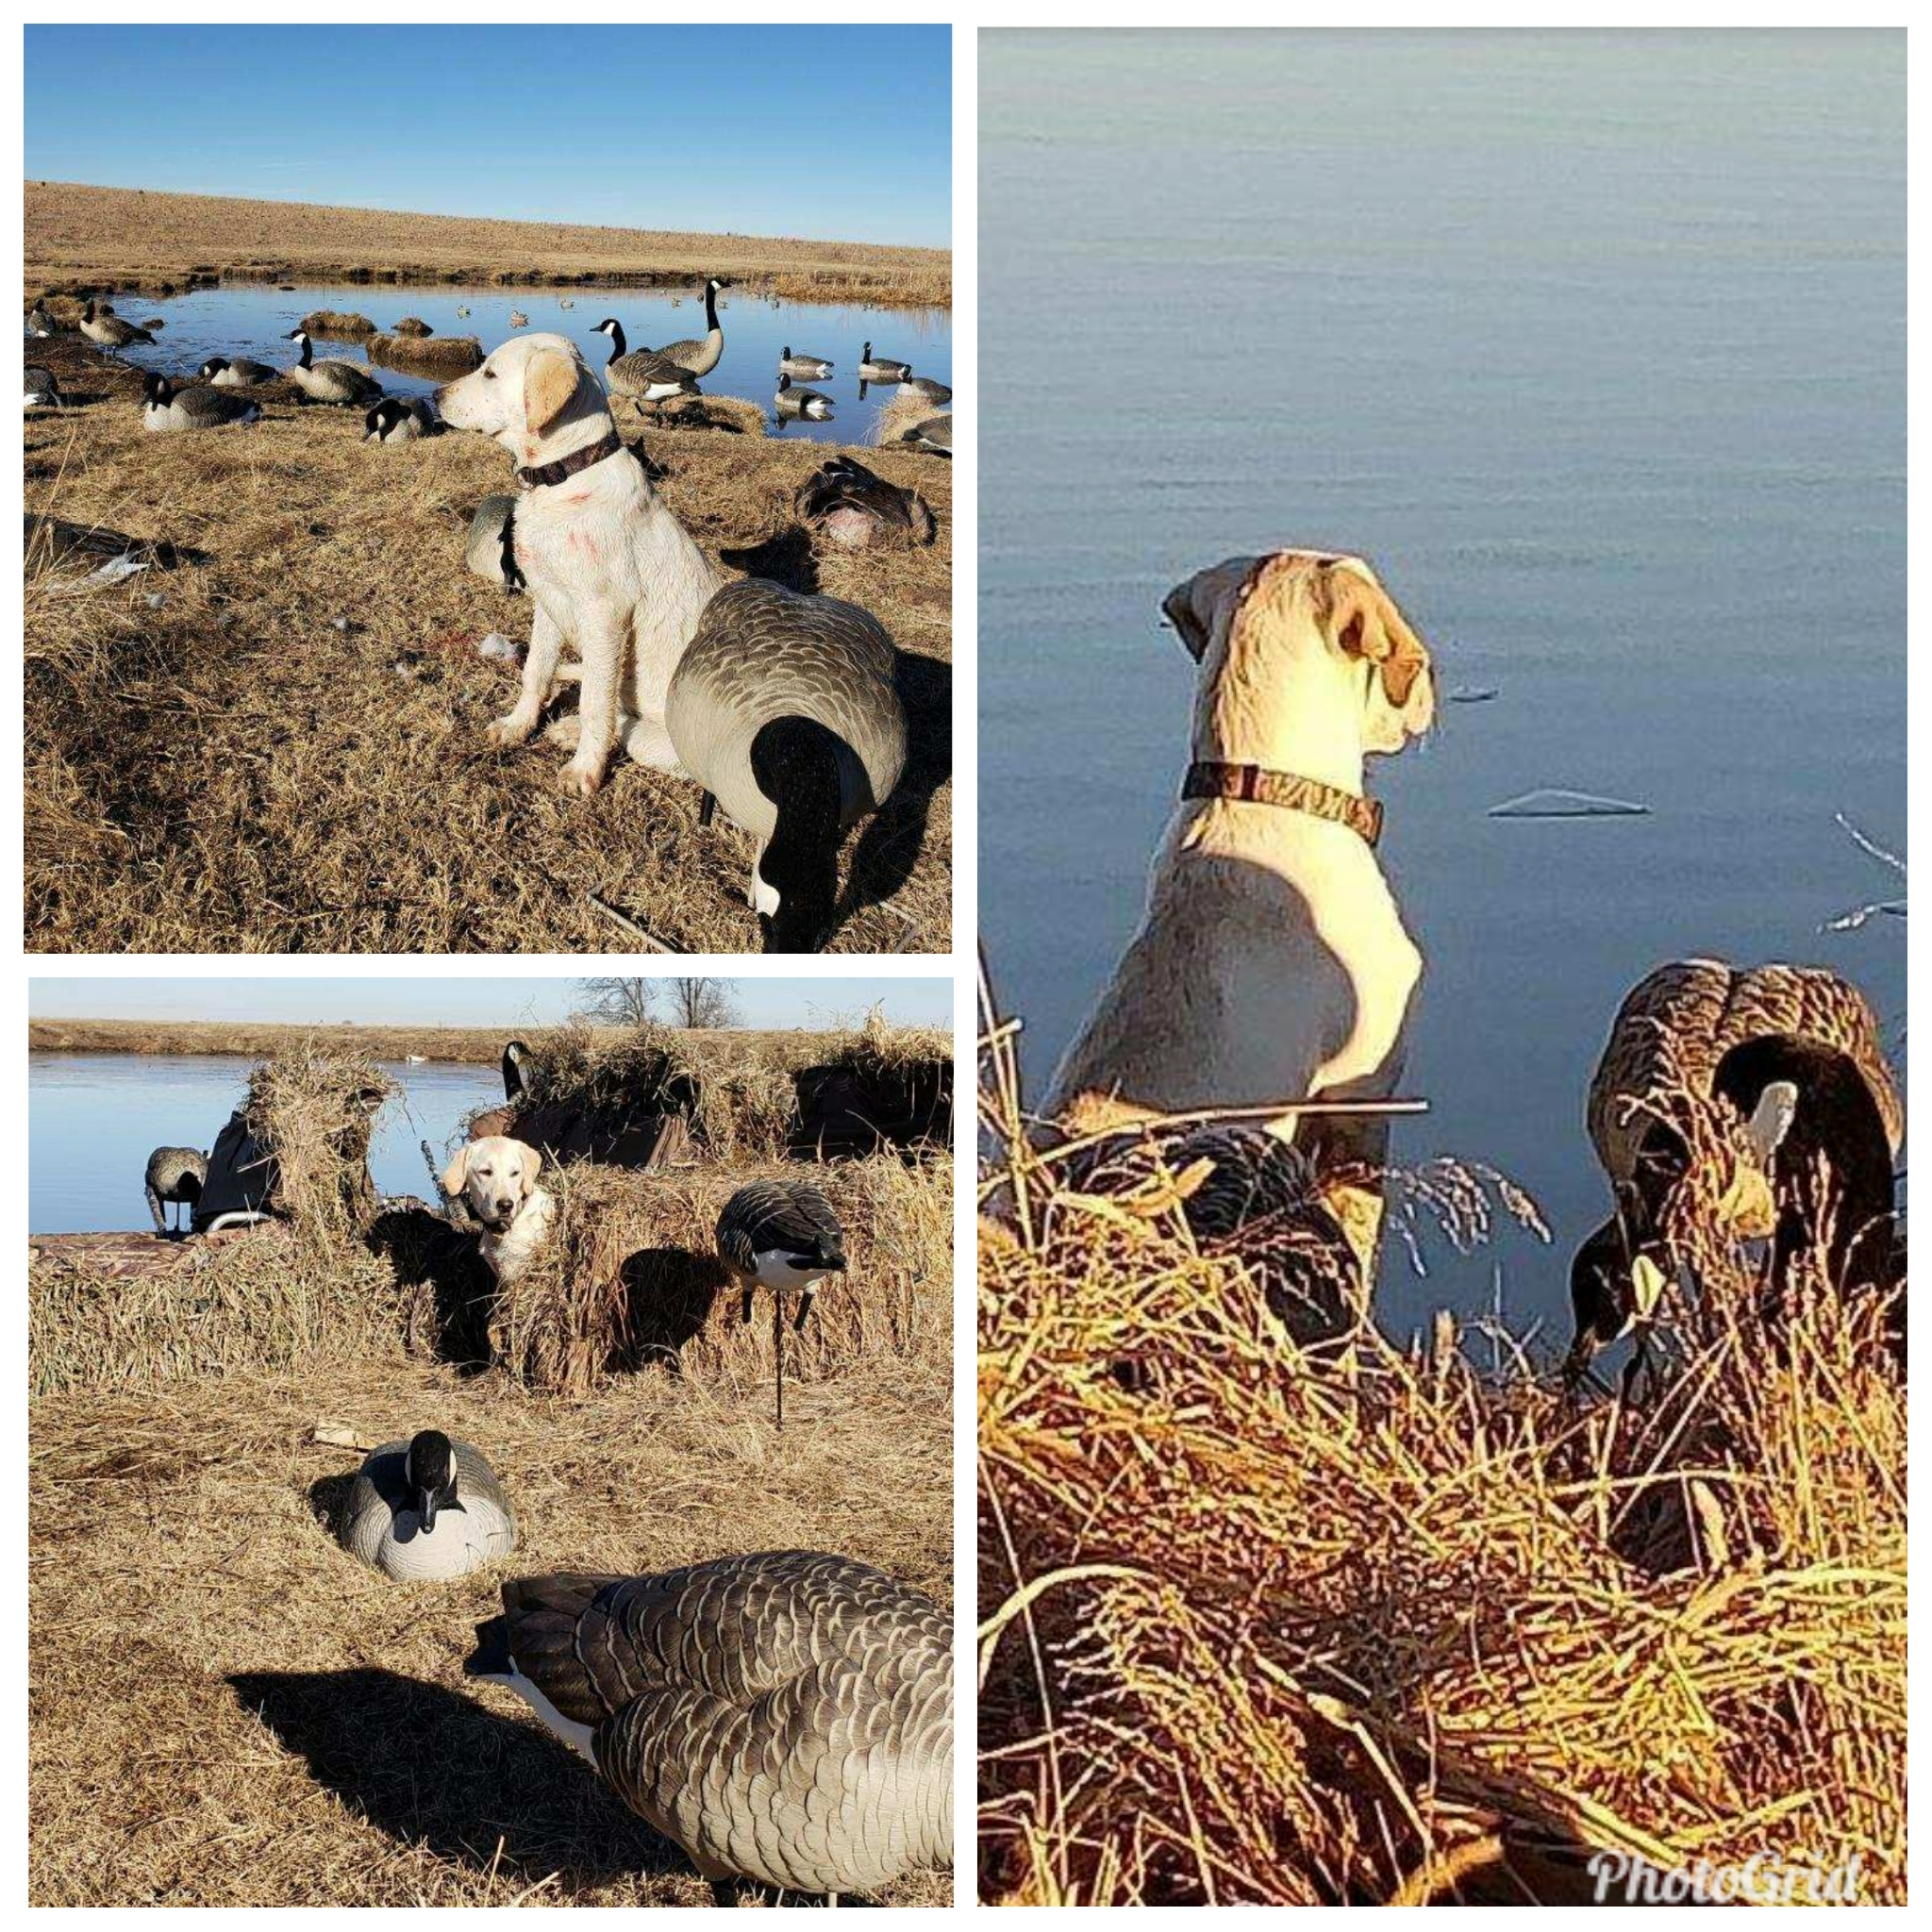 Emma has been a bird dog from the start, barely bigger than the geese she is hunting in these pics. She is a north Riley County pup belonging to her dog dad Monte.  Emma's sire is Got Game's Prize Hound; Brock (pointing lab for pheasant and quail).